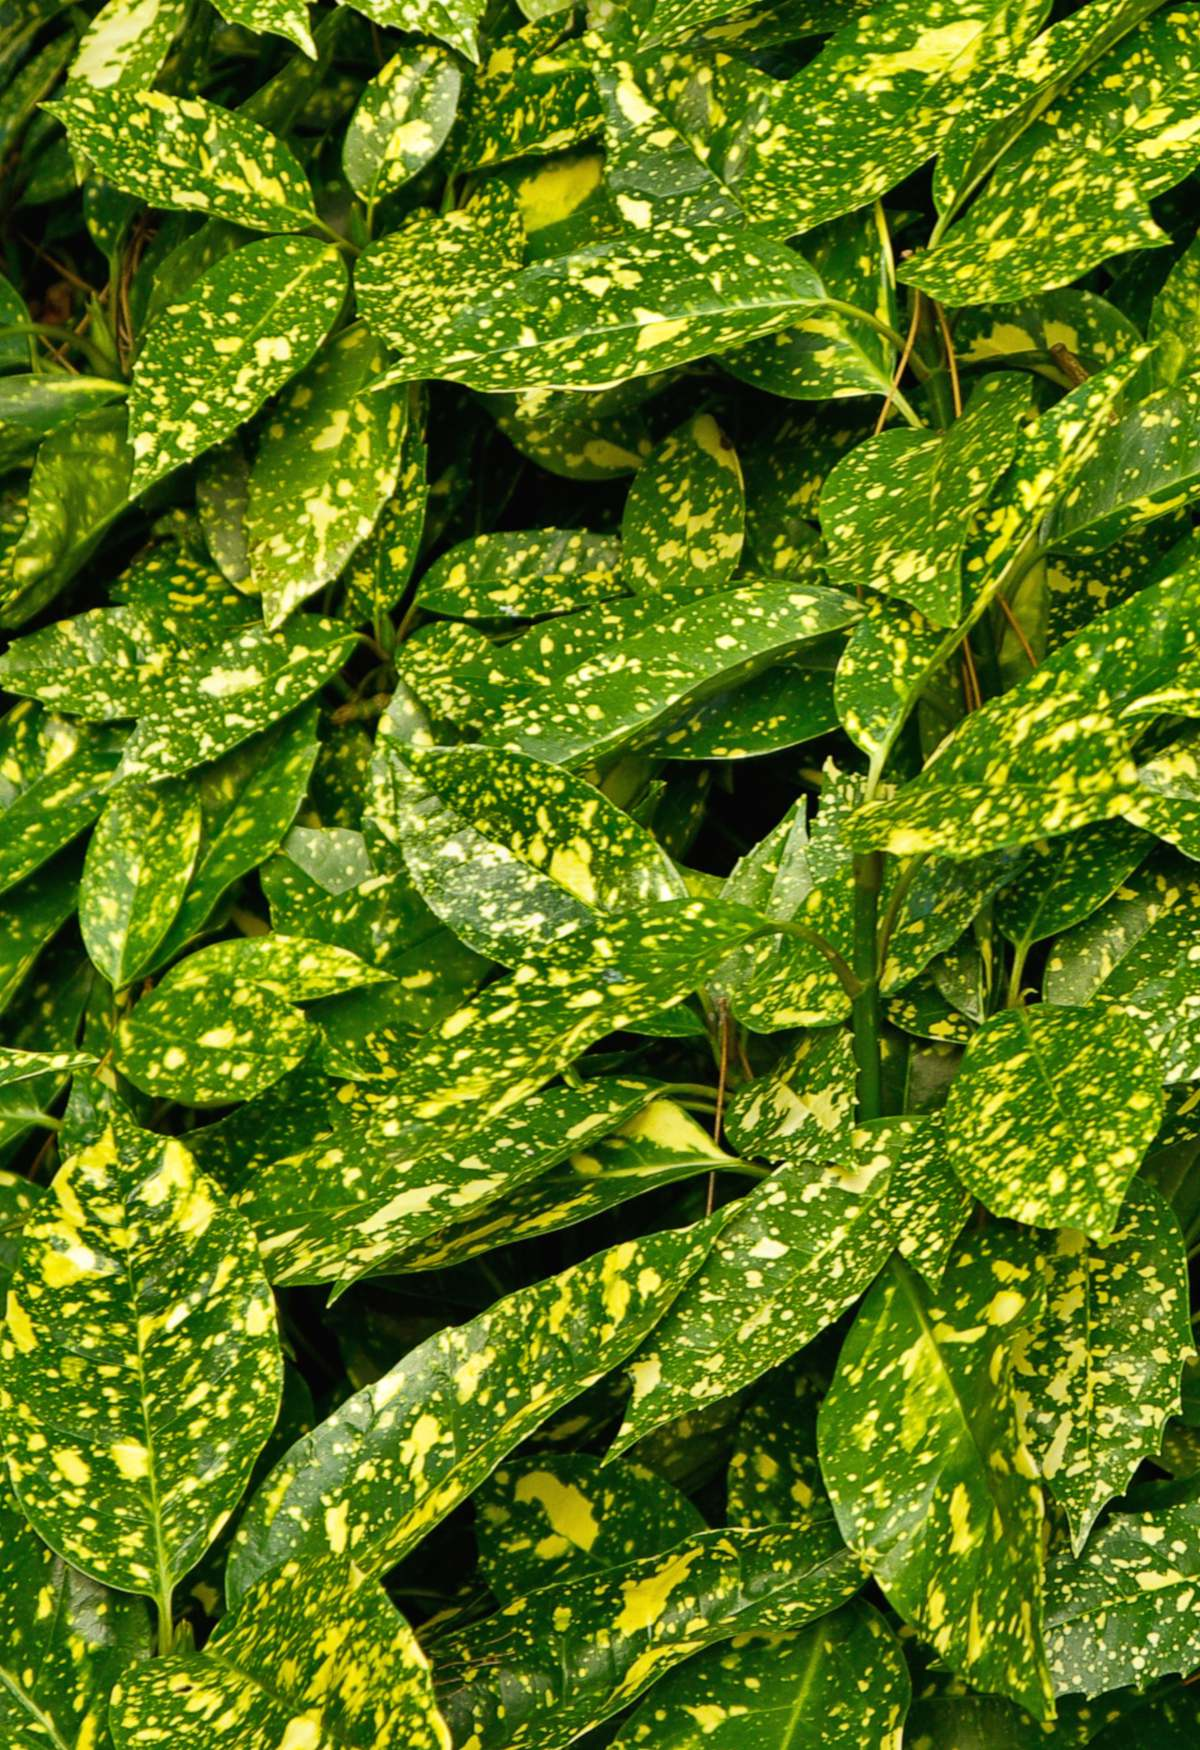 Spotted laurel leaves